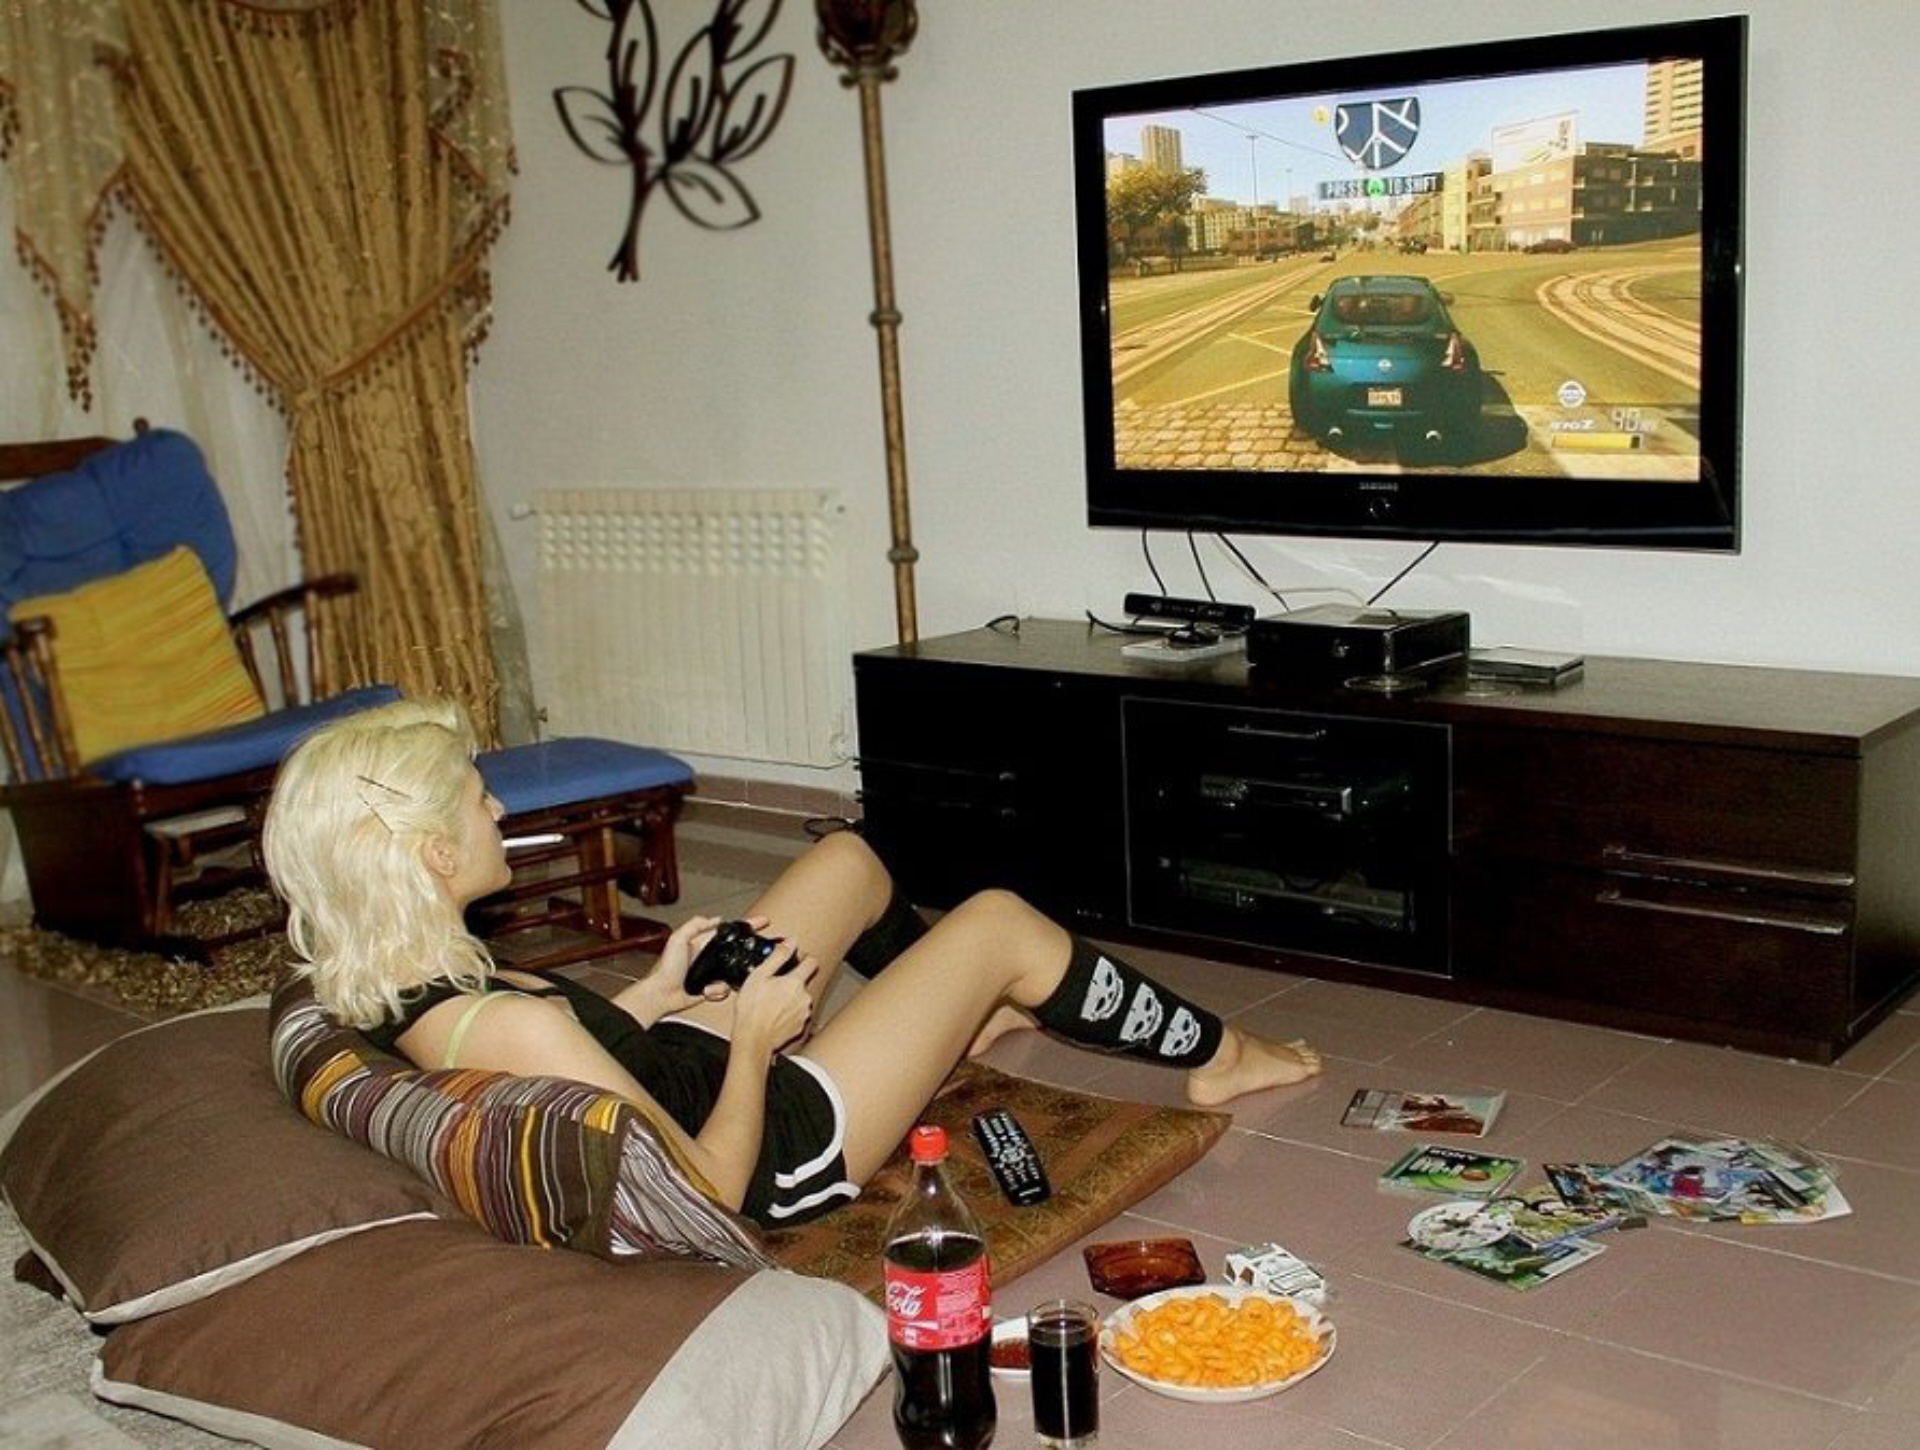 how to play xbox games: